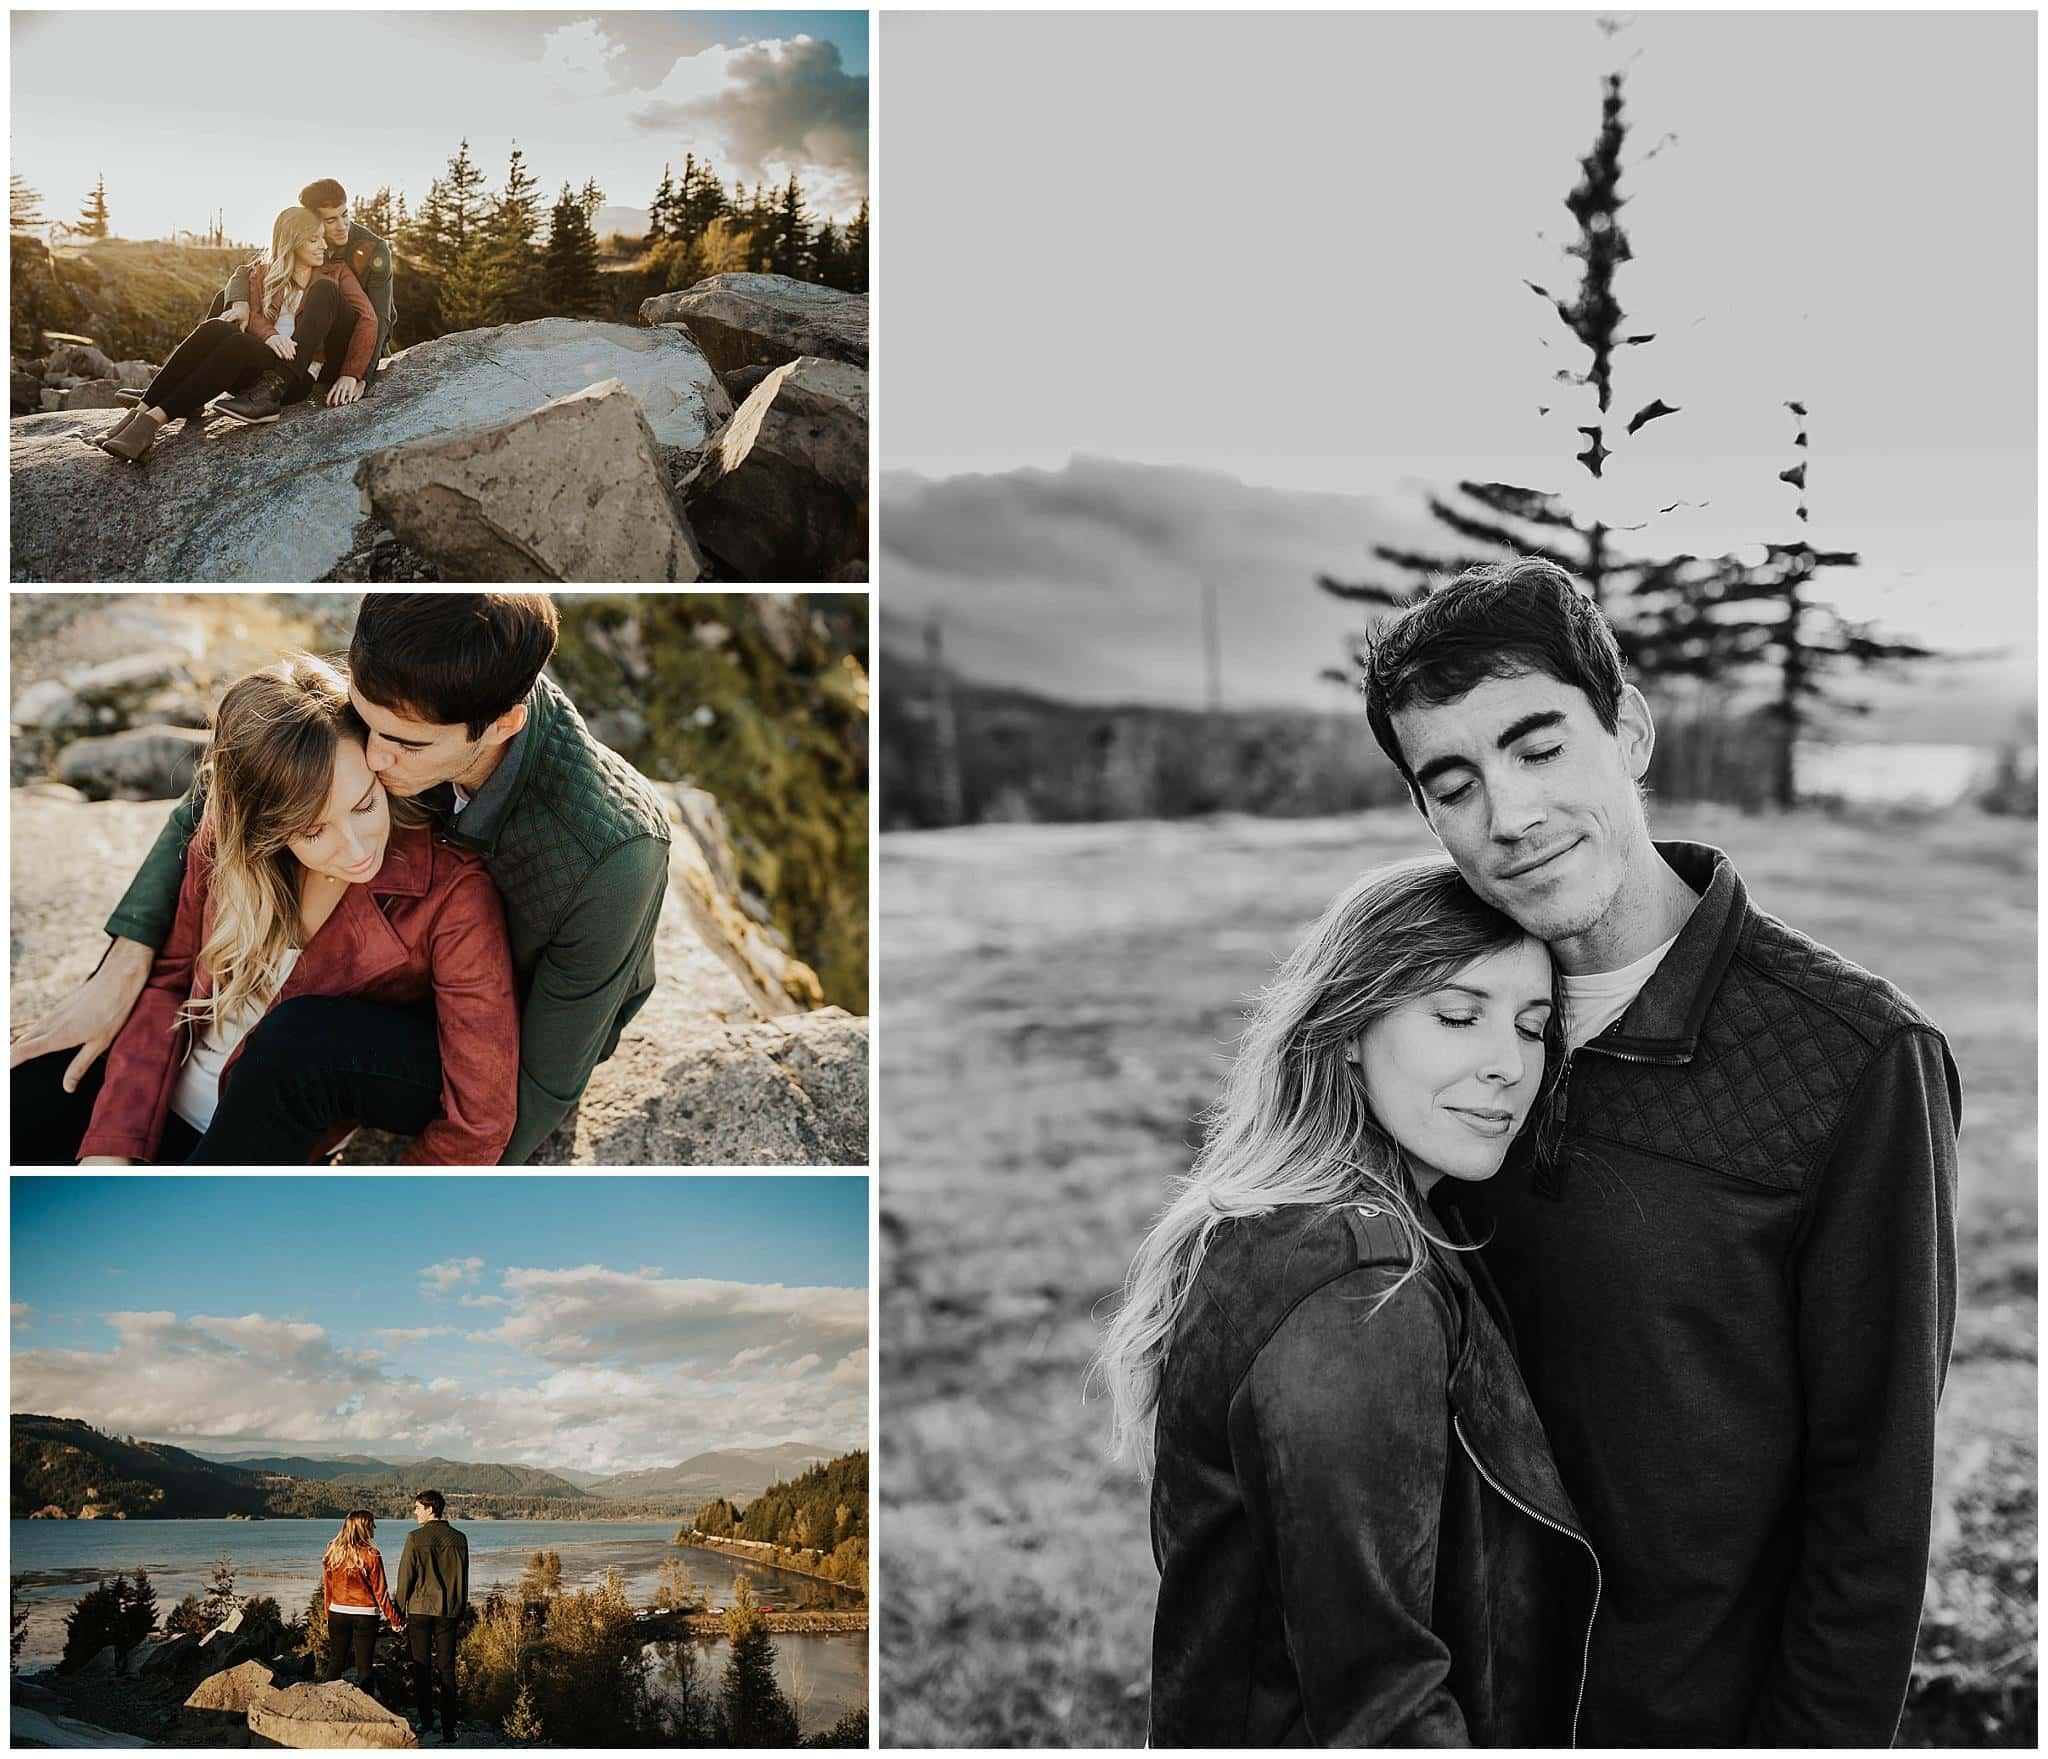 Four photos in a married collage of a couple in love